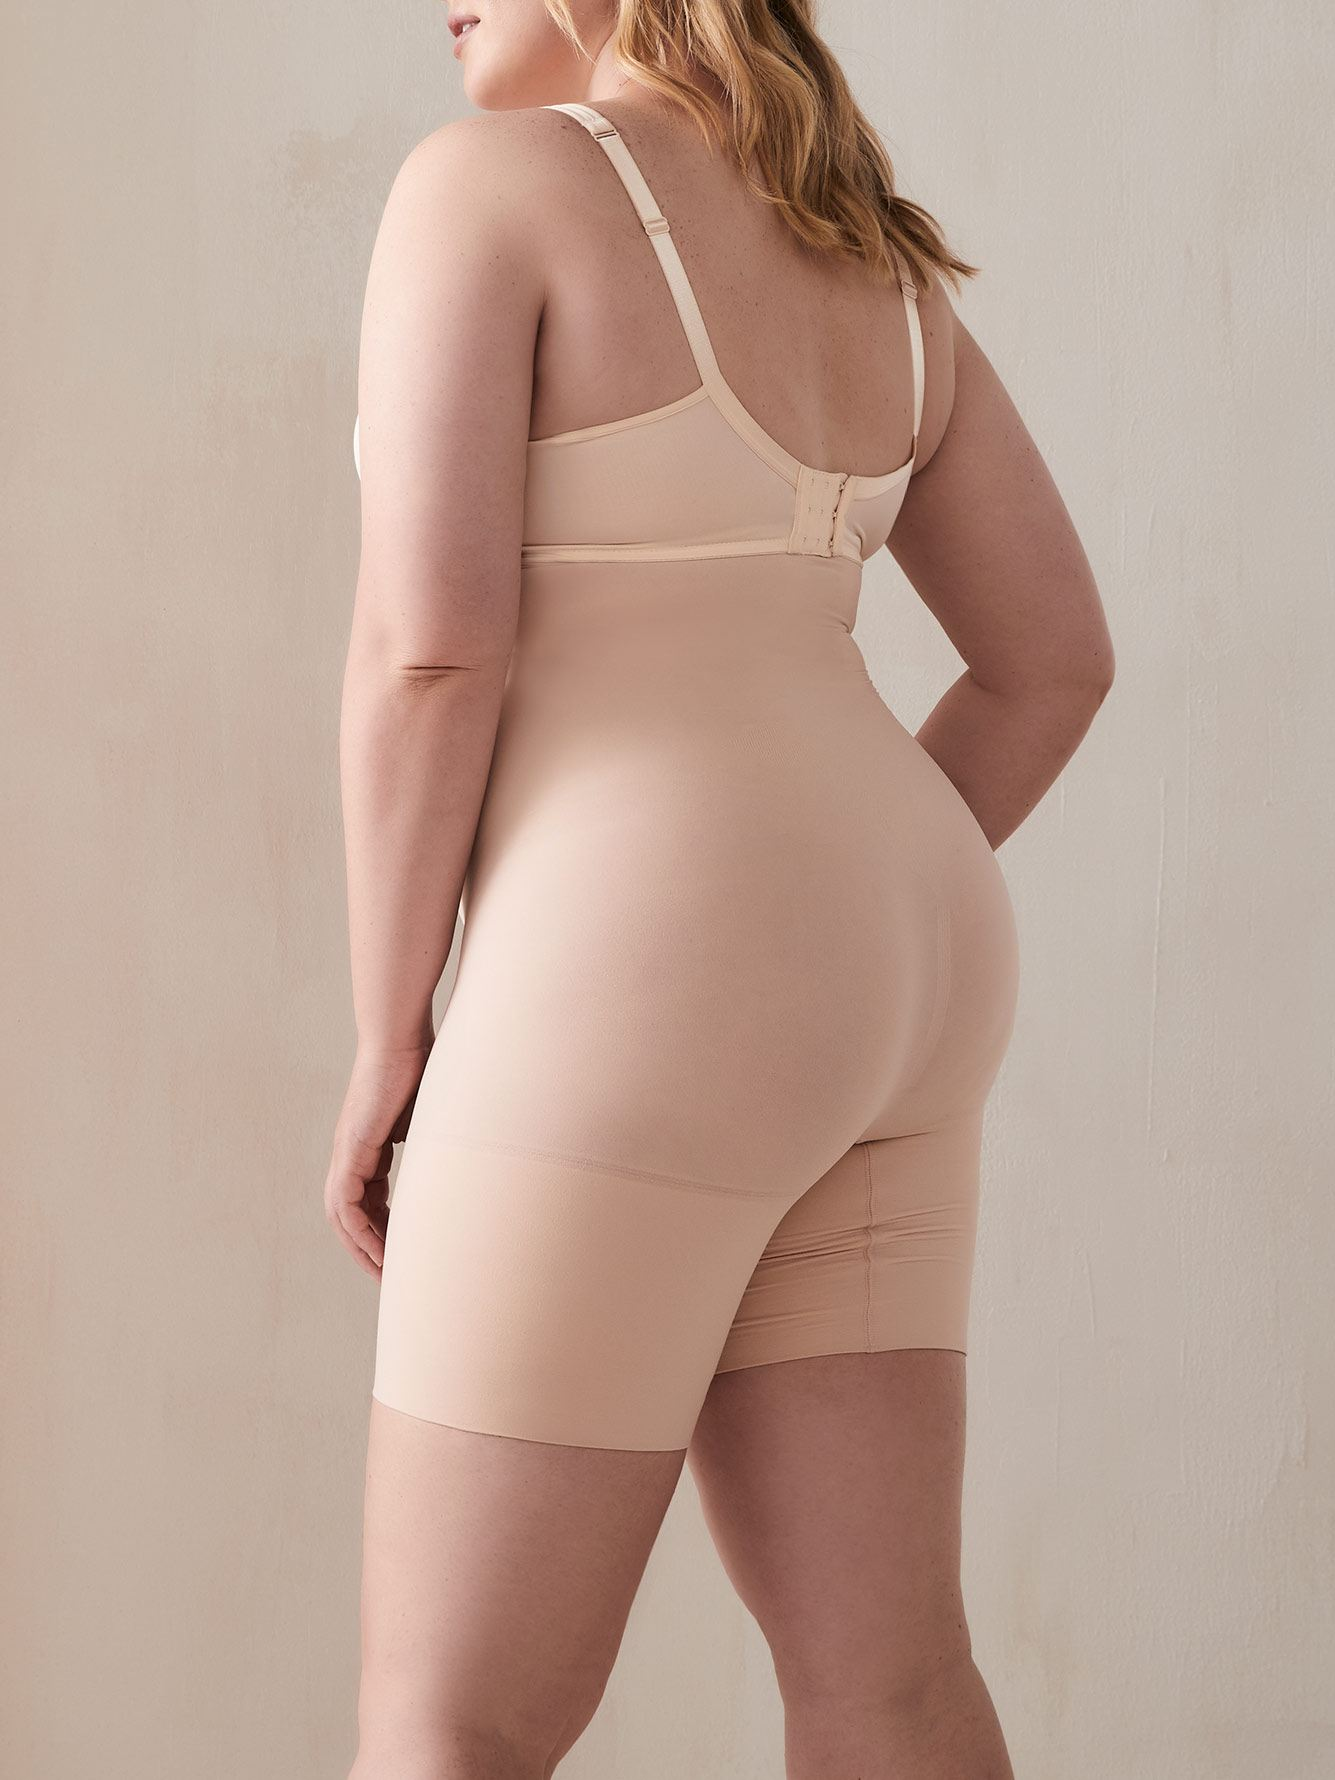 Higher Power Mid-Thigh Shapewear Shorts - Spanx